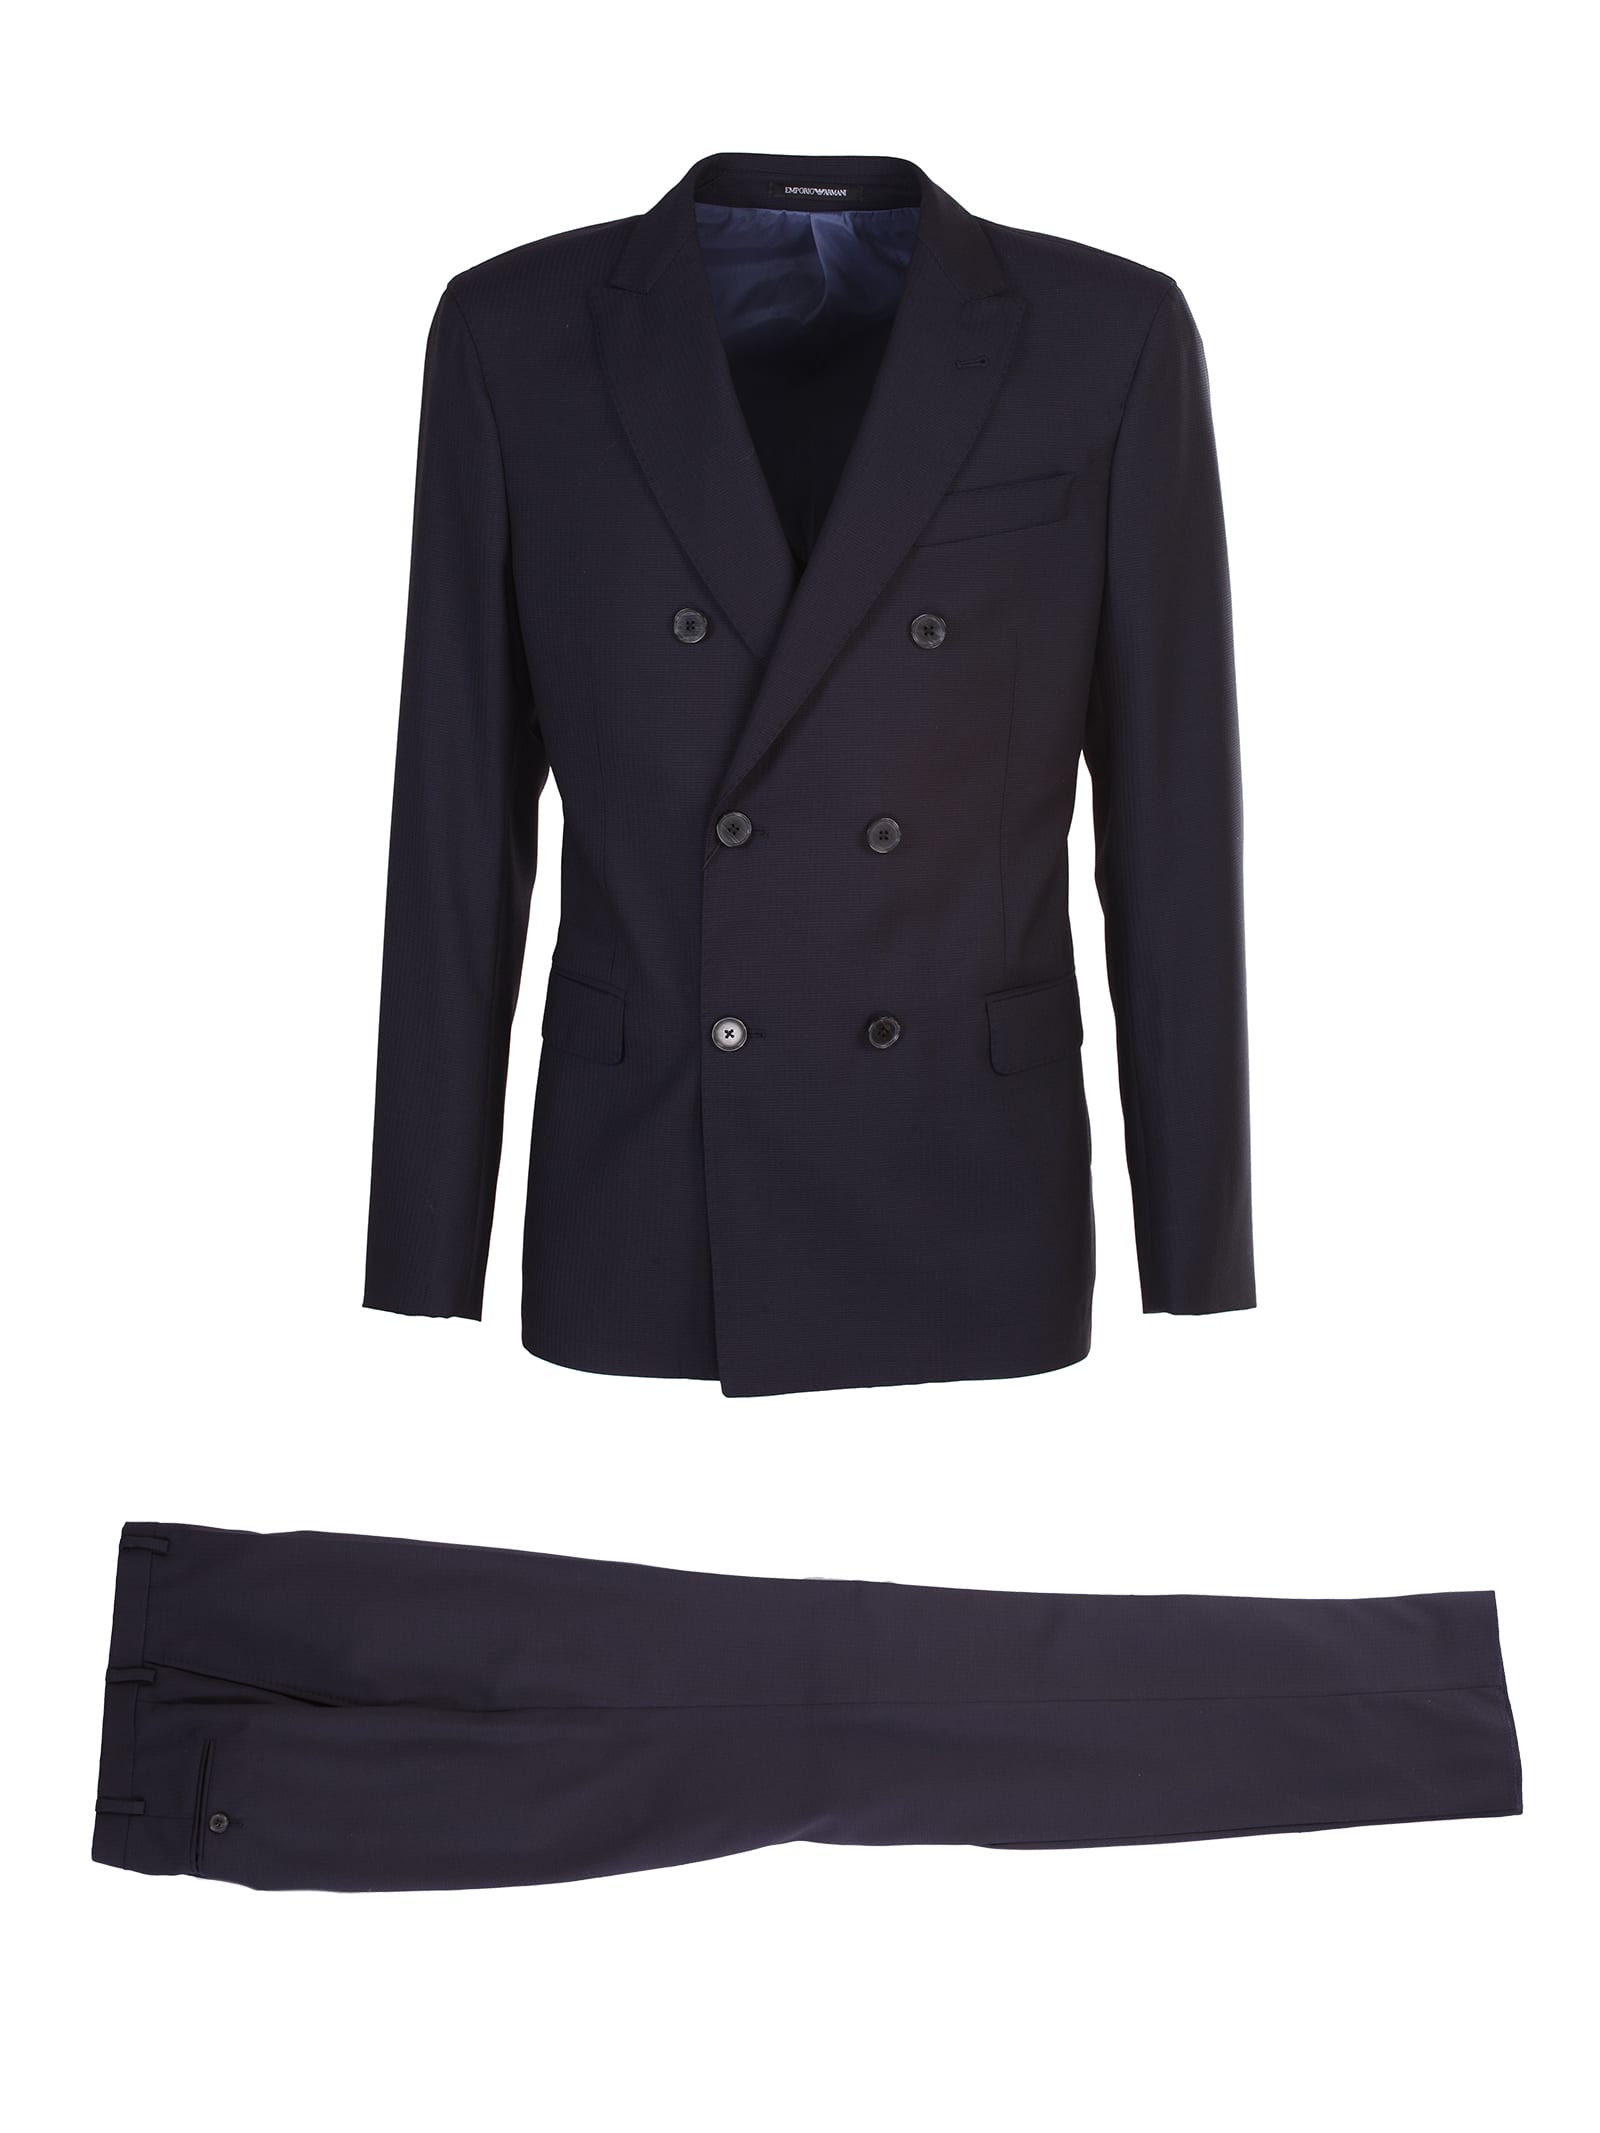 Emporio Armani basic double-breasted suit